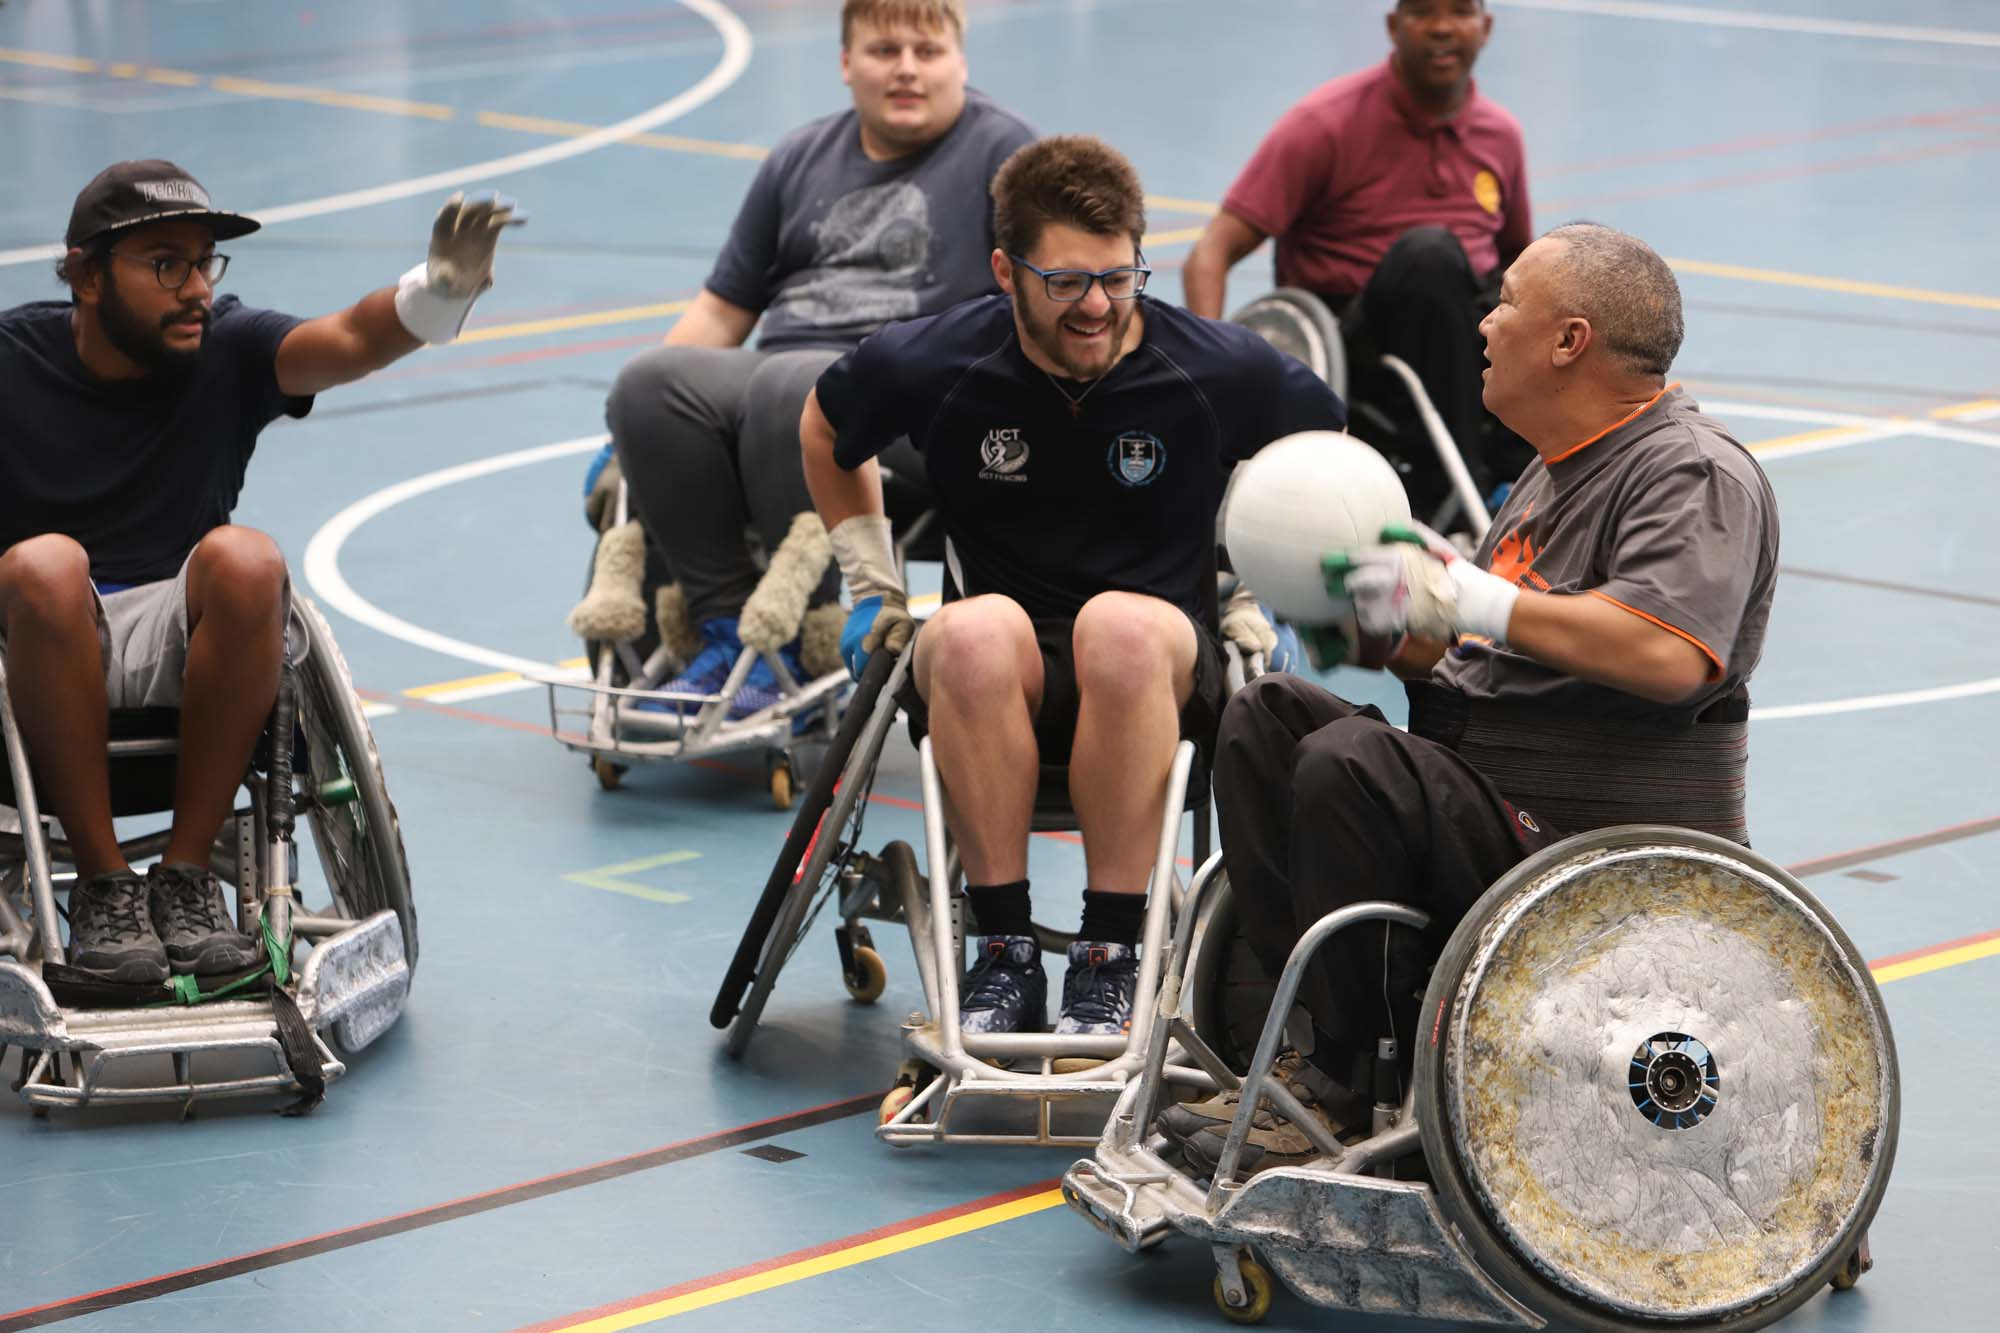 Hosted in support of sports for people with disabilities, the Interclub Wheelchair Rugby Tournament took place in May at the UCT Sports Centre.